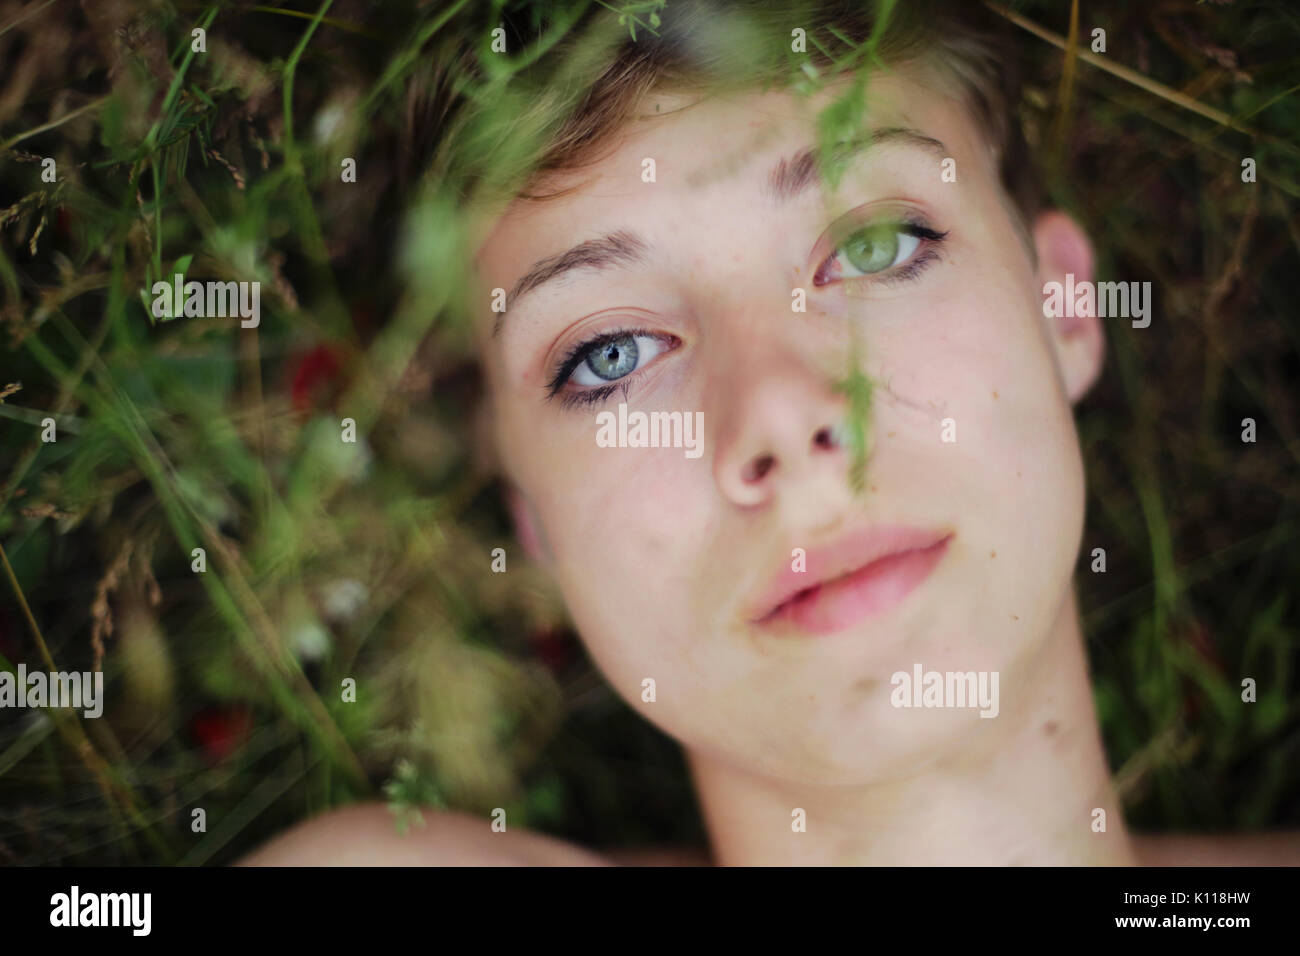 Sad woman lies in the grass - Stock Image